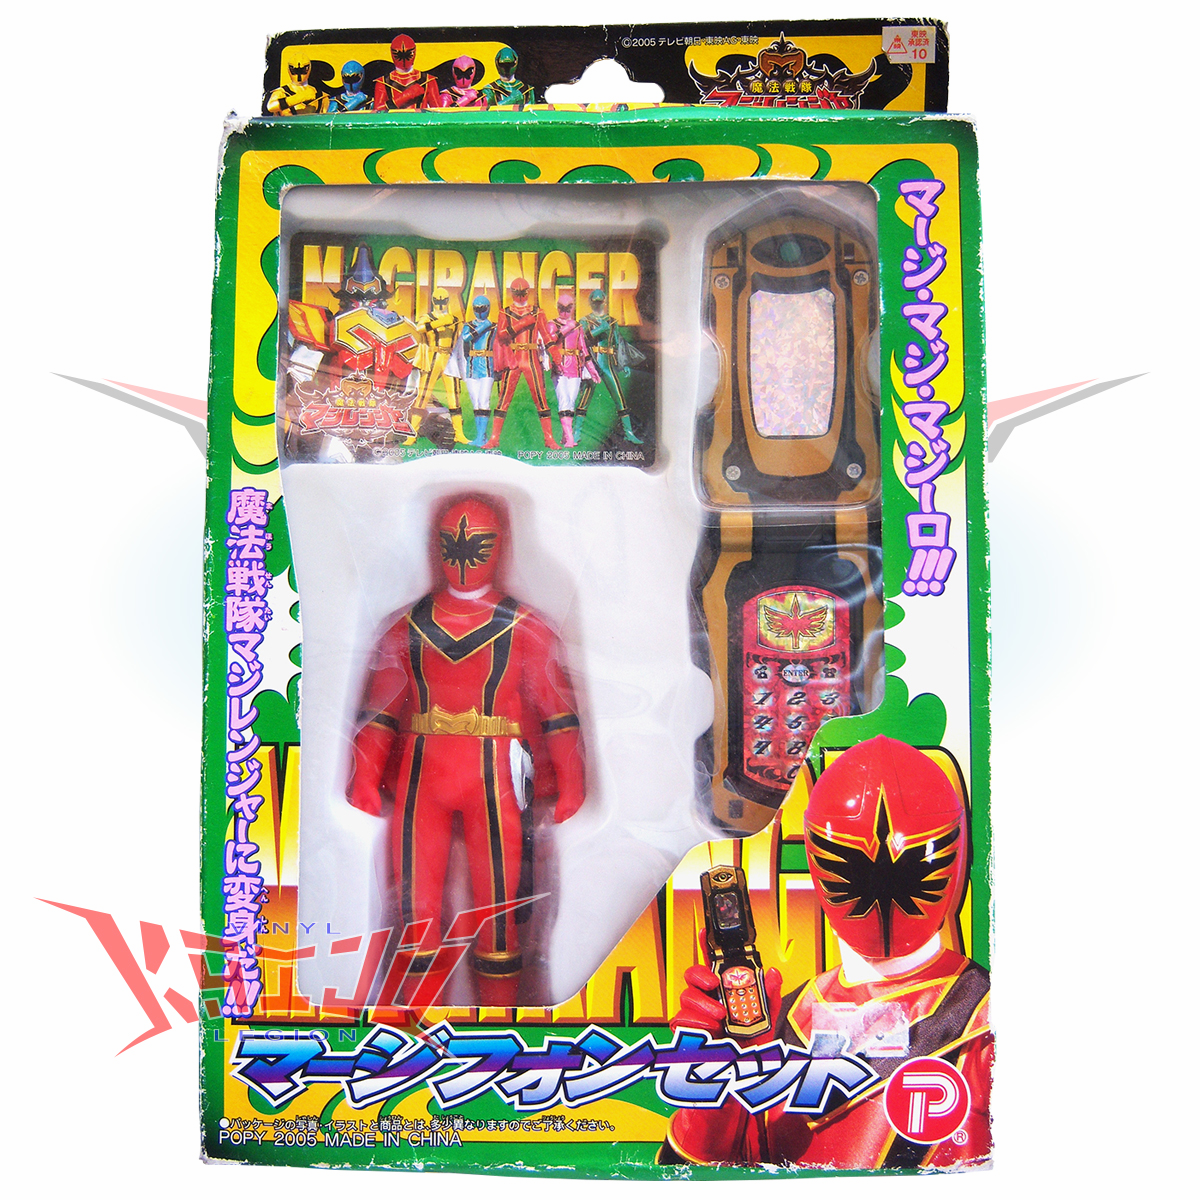 Popy 2005 Magiranger MagiRed and MagiPhone Toy Set